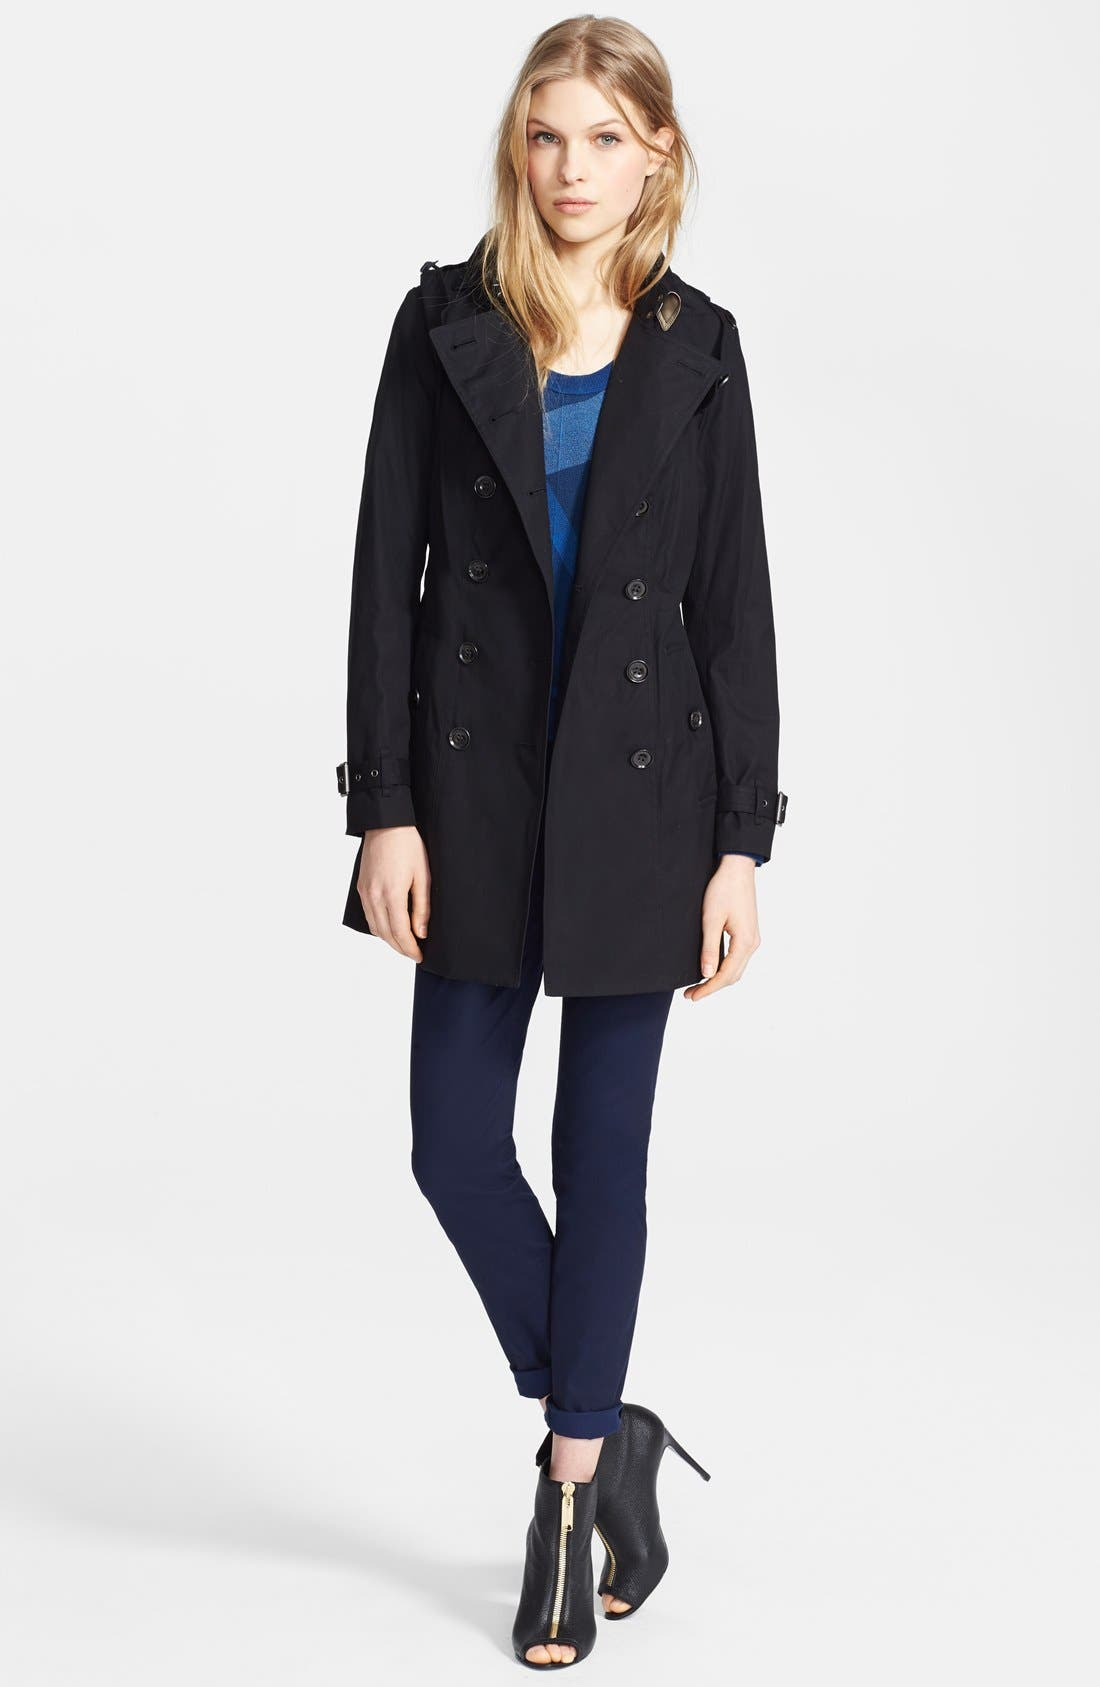 'Reymoore' Trench Coat with Detachable Hood,                             Alternate thumbnail 2, color,                             001